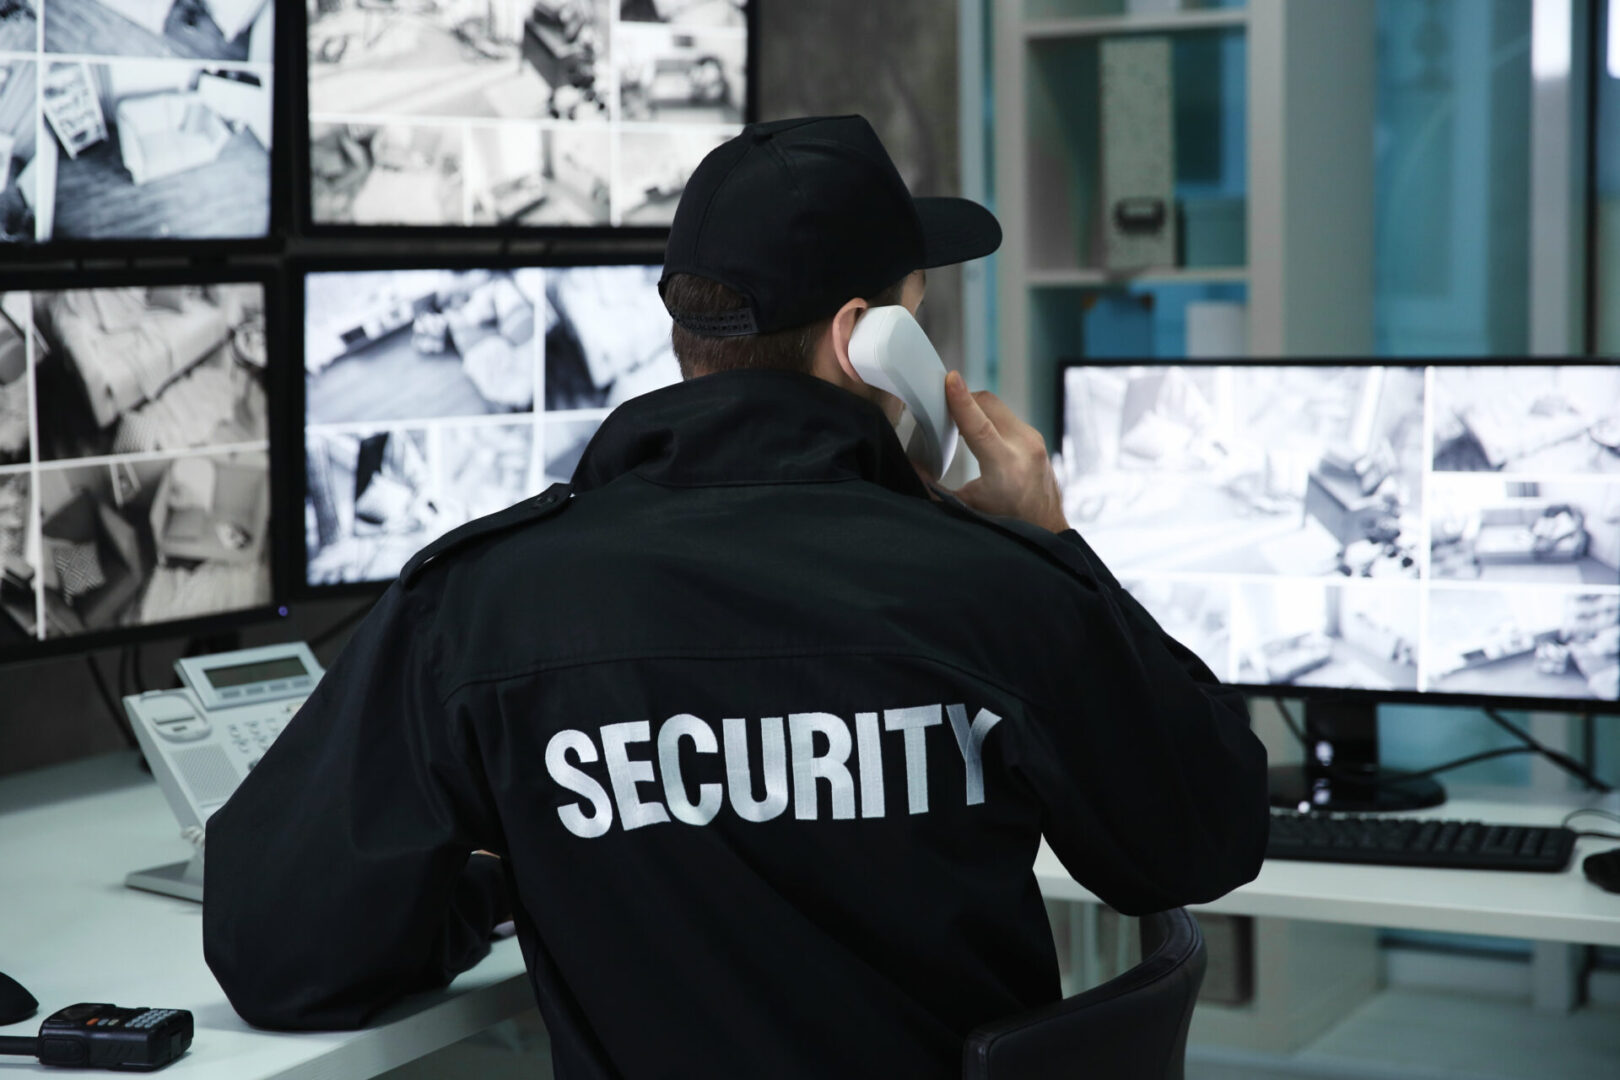 security-image-6